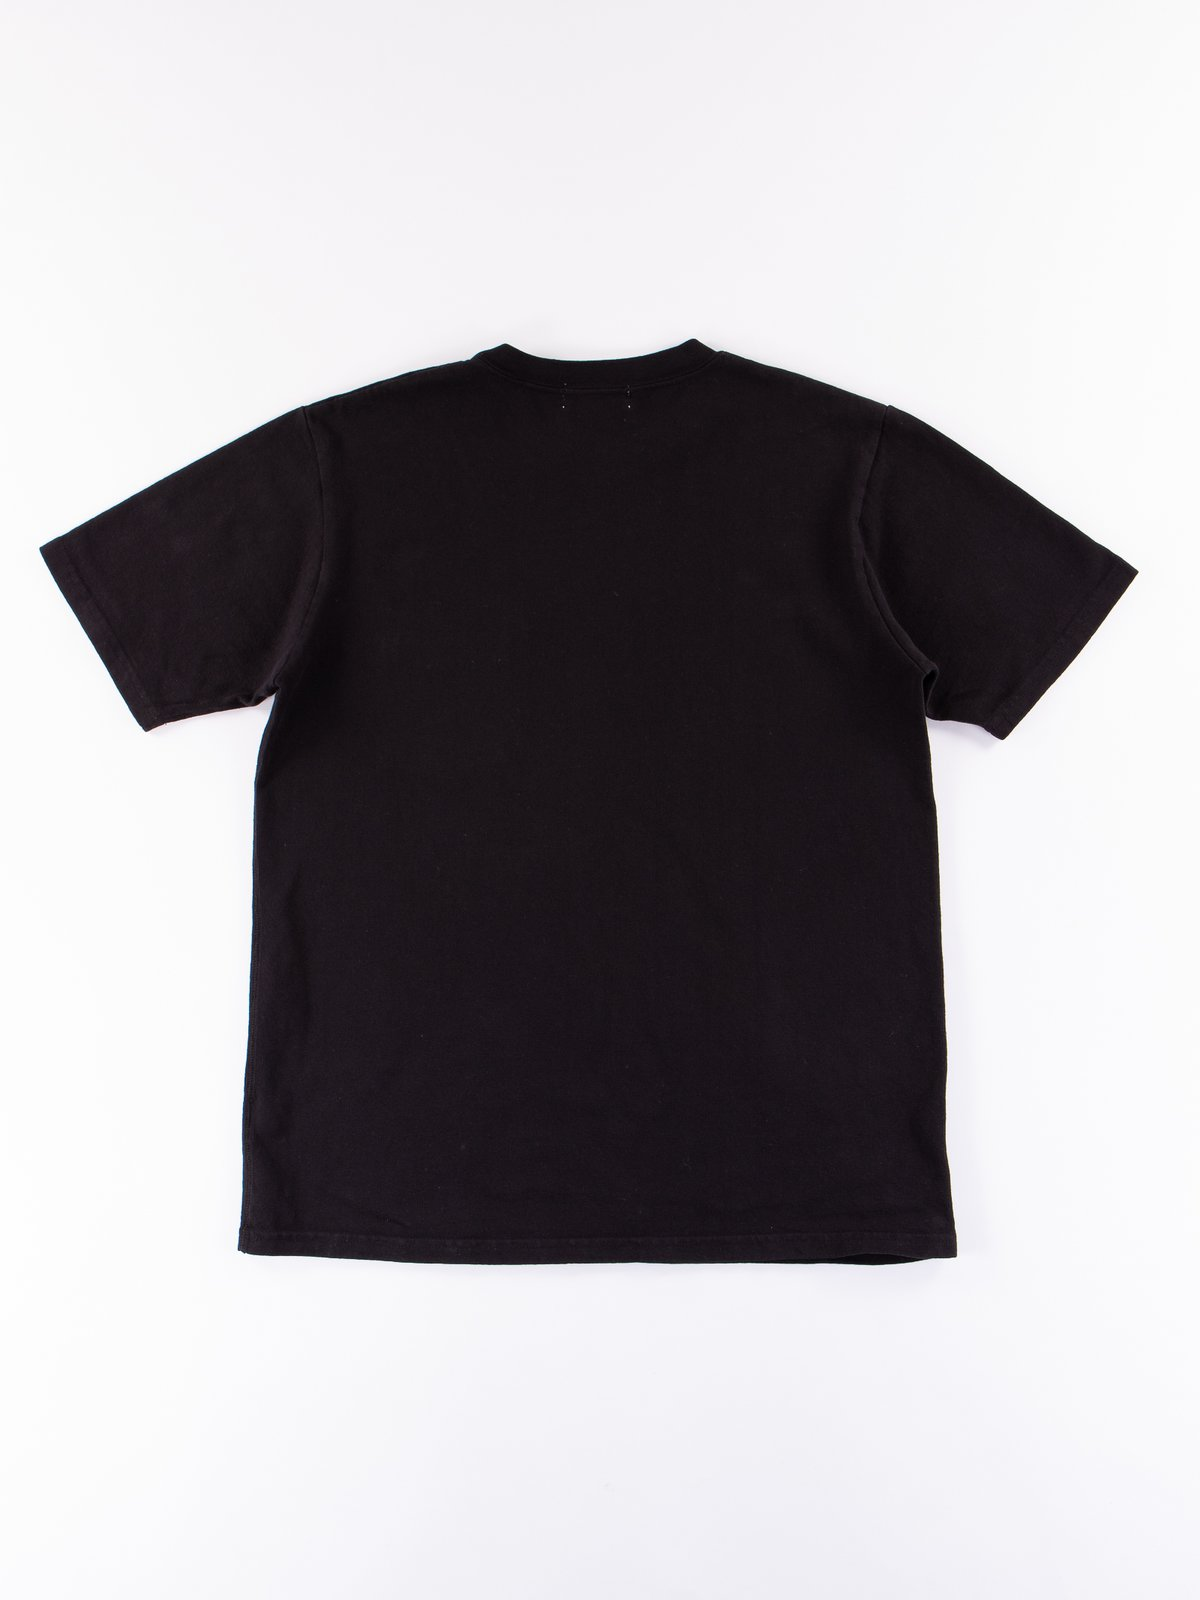 Black Heavy Oz Pocket Tee - Image 5